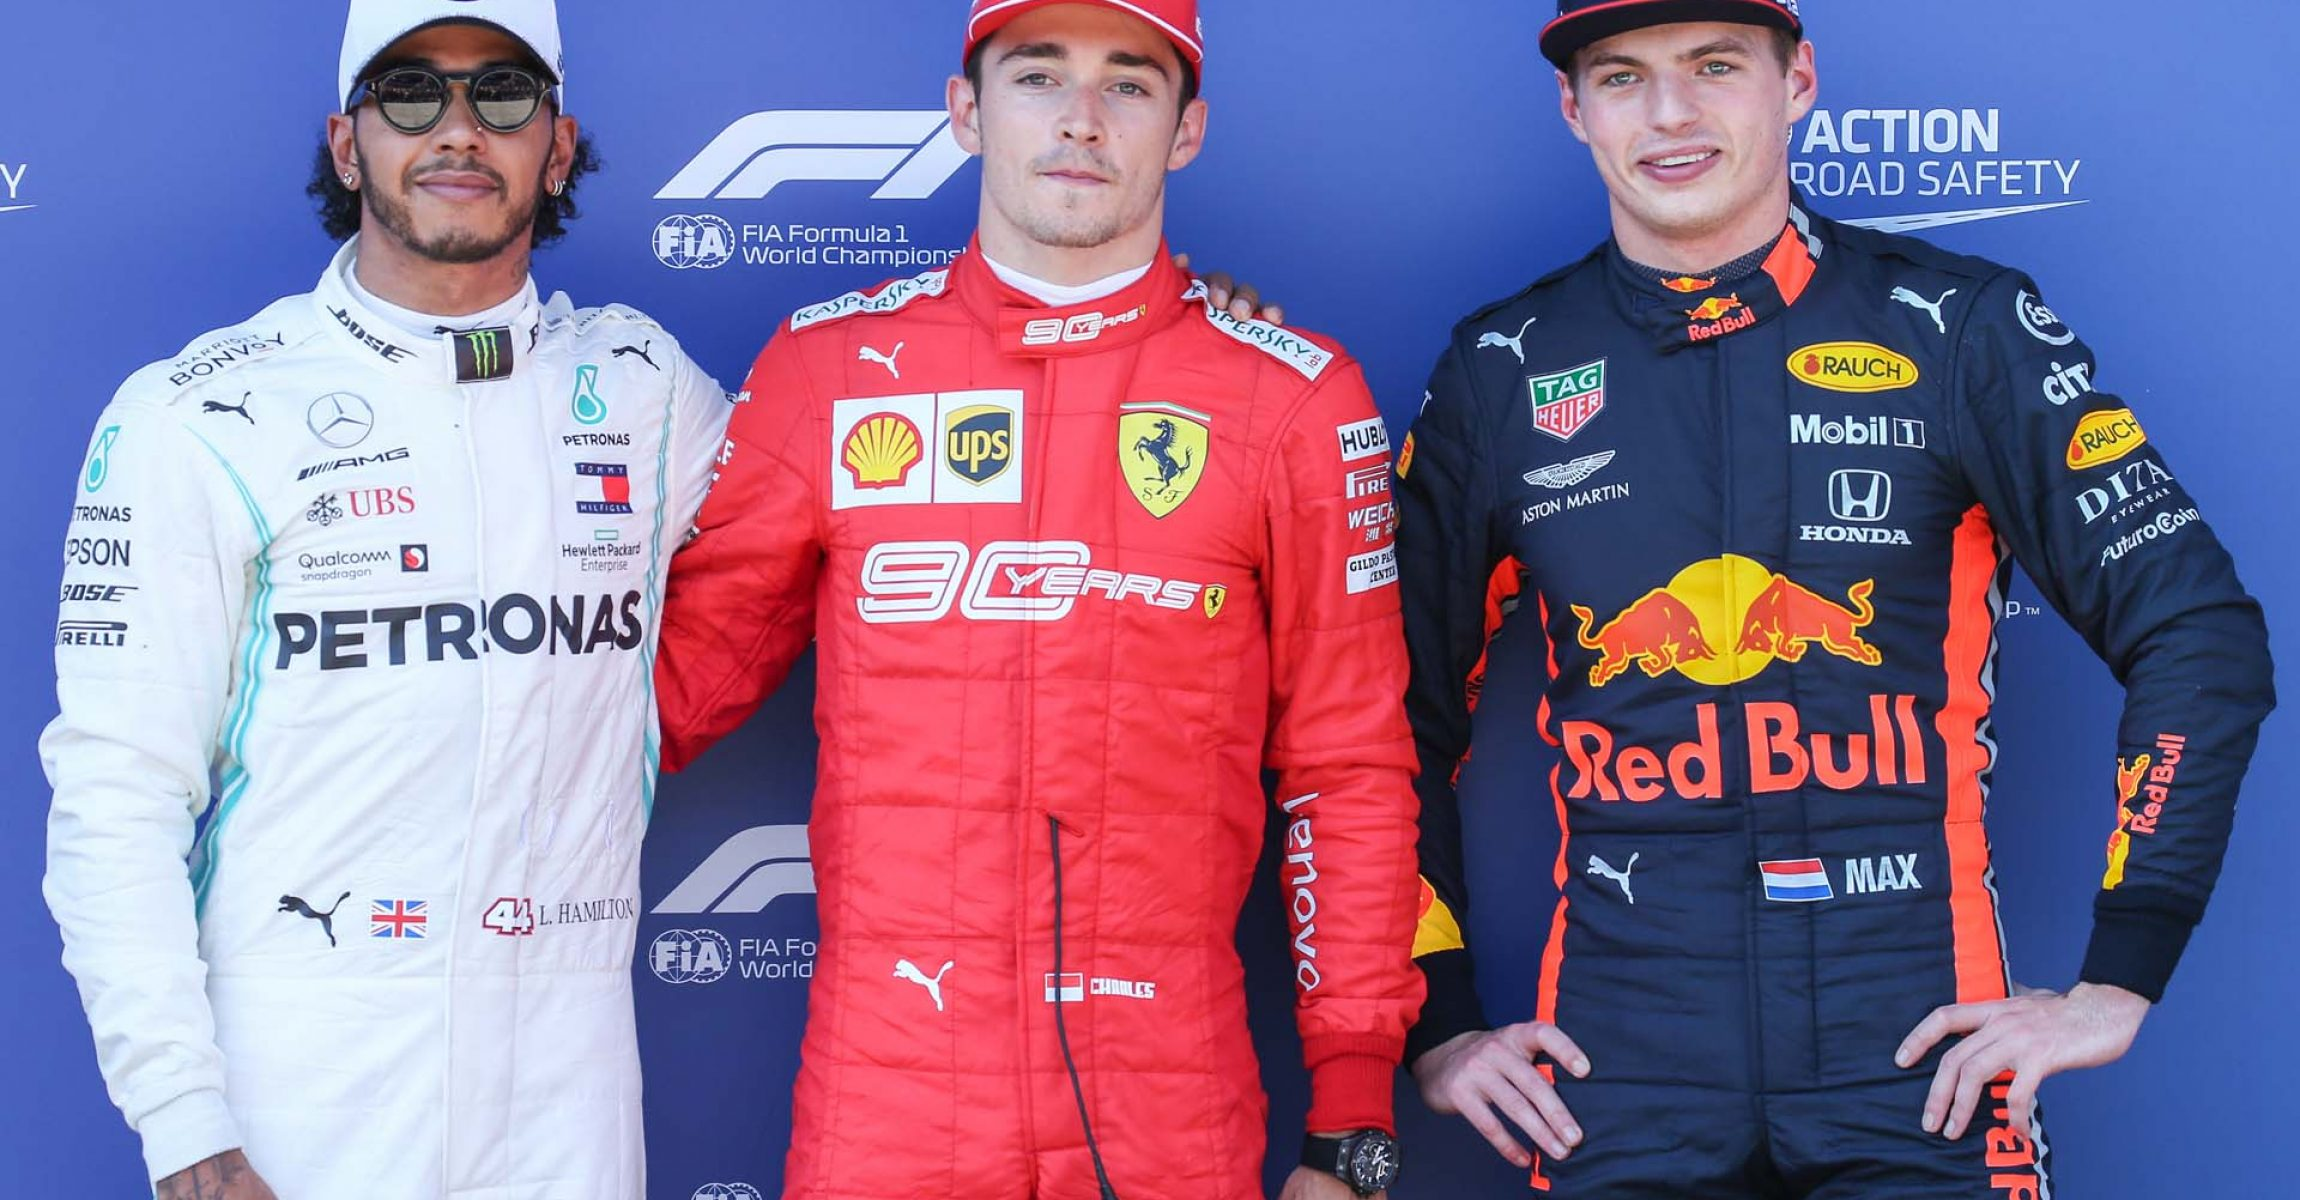 SPIELBERG,AUSTRIA,29.JUN.19 - MOTORSPORTS, FORMULA 1 - Grand Prix of Austria, Red Bull Ring, qualification. Image shows Lewis Hamilton (GBR/ Mercedes), Charles Leclerc (MON/ Ferrari) and Max Verstappen (NED/ Red Bull Racing). Photo: GEPA pictures/ Harald Steiner - For editorial use only. Image is free of charge.